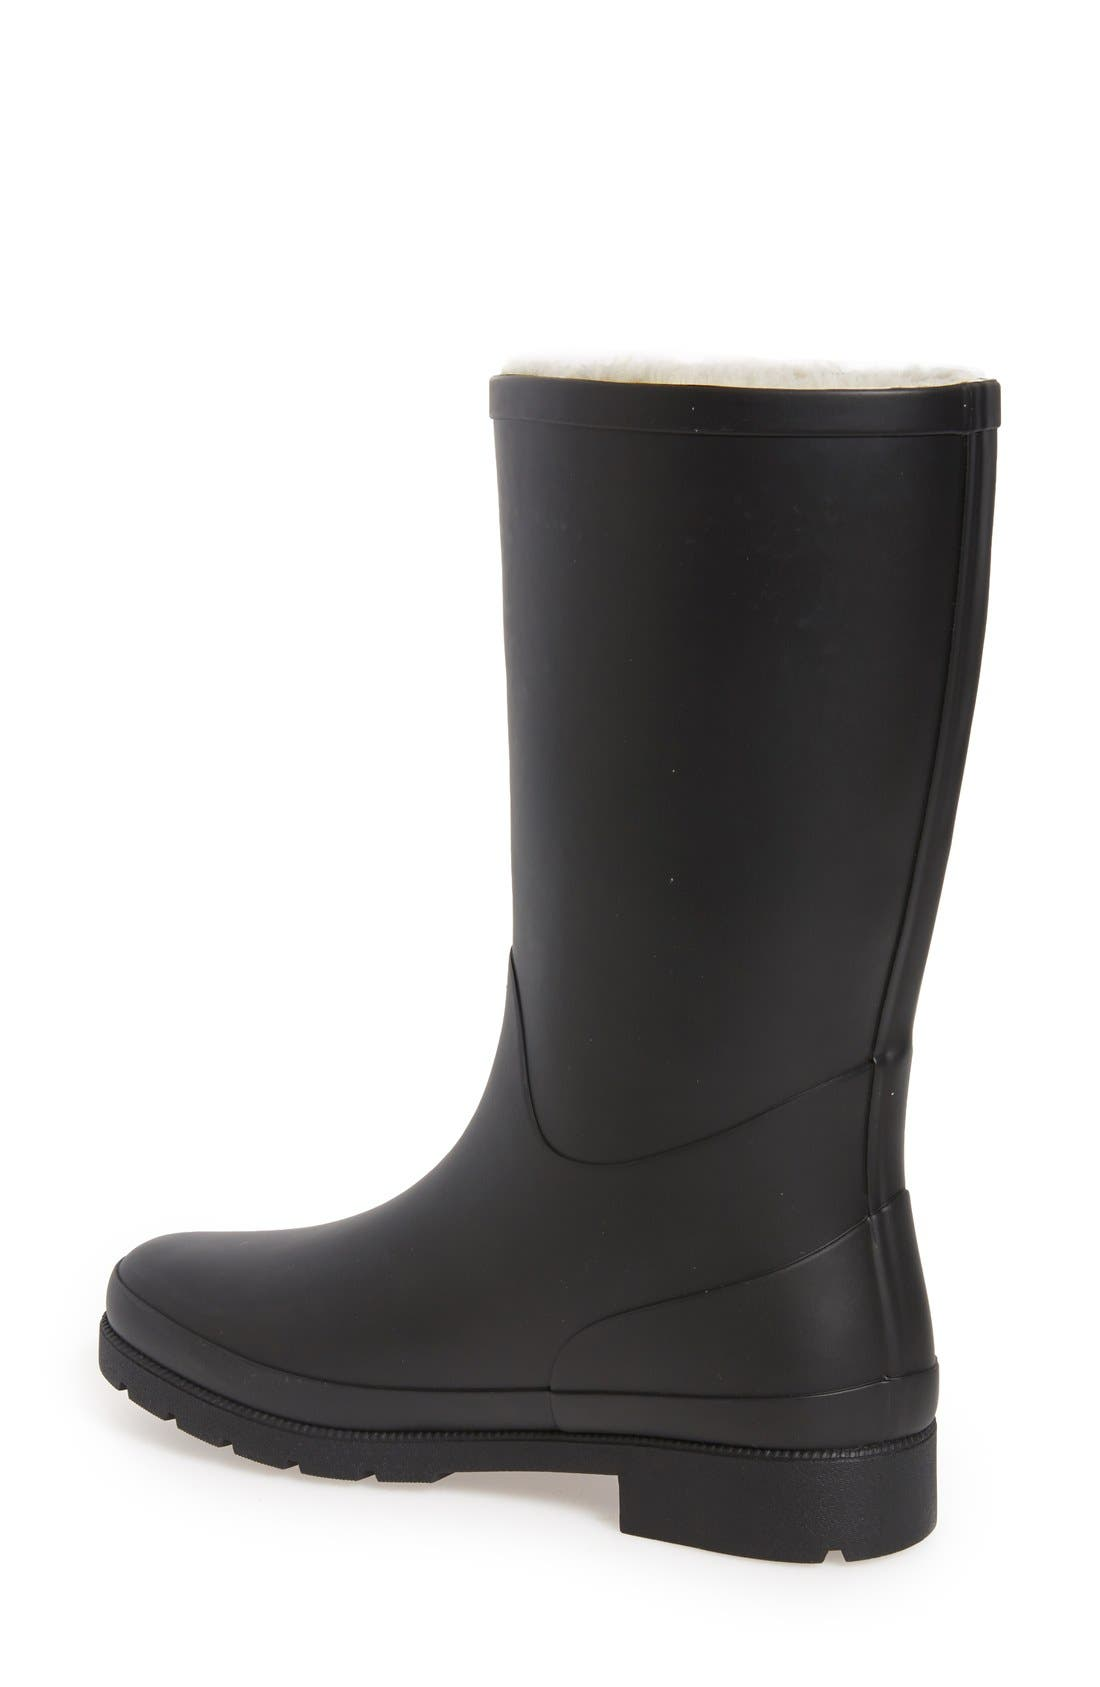 TRETORN,                             'Libby' Rain Boot,                             Alternate thumbnail 2, color,                             001